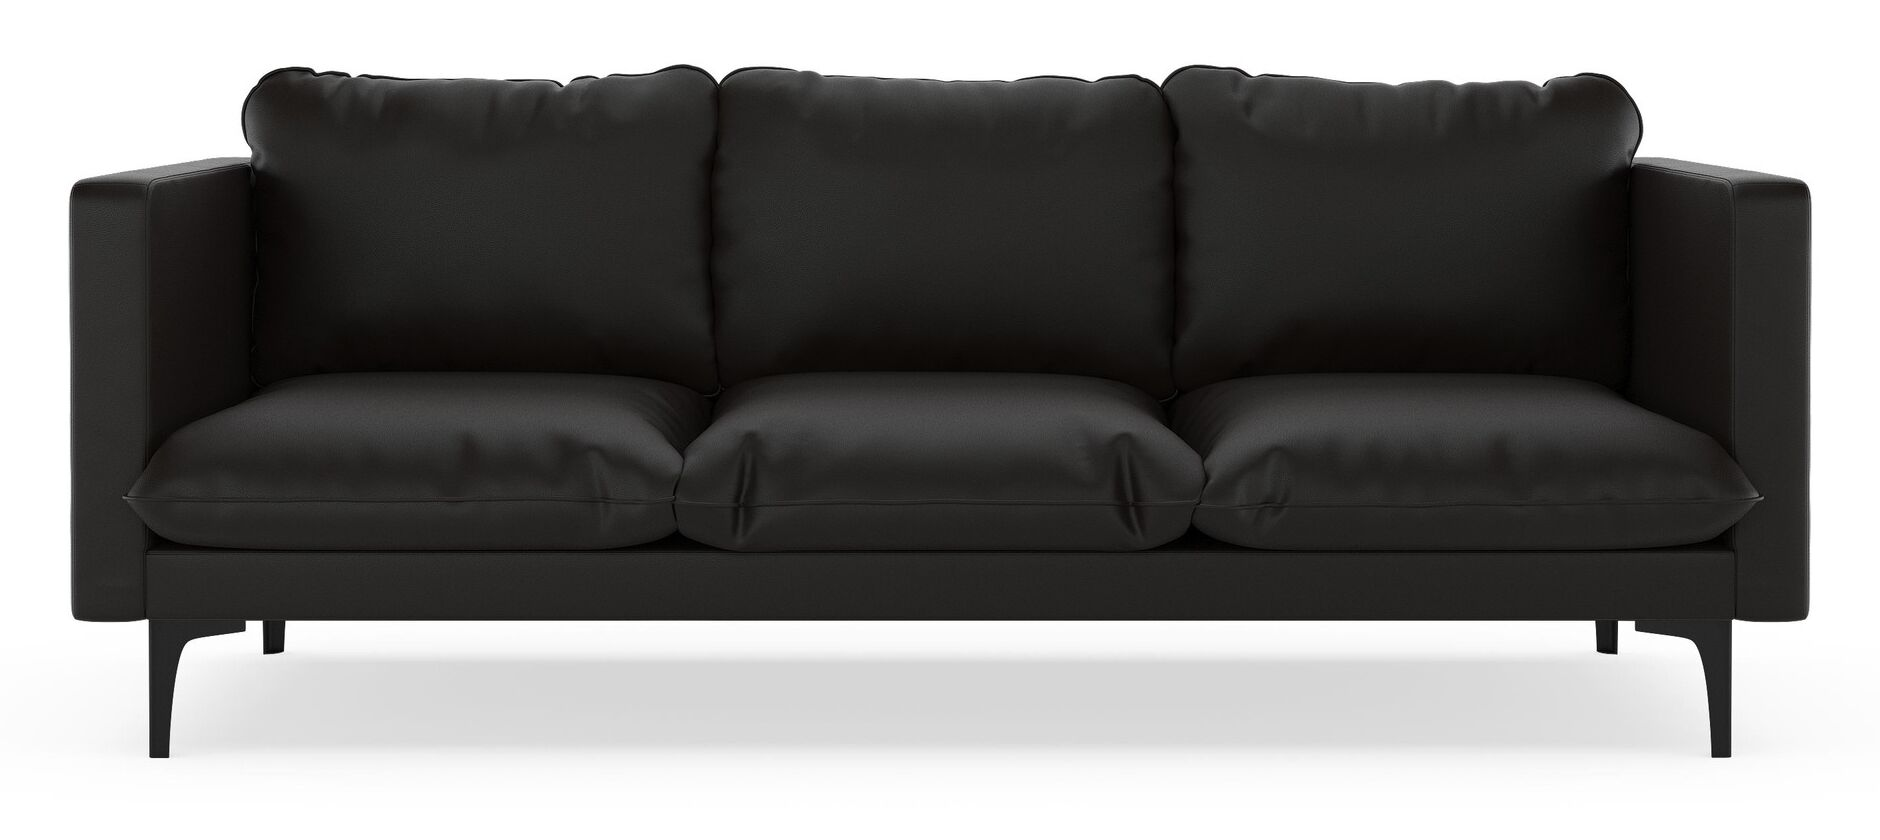 Rumford Sofa Finish: Chrome, Upholstery: Onyx